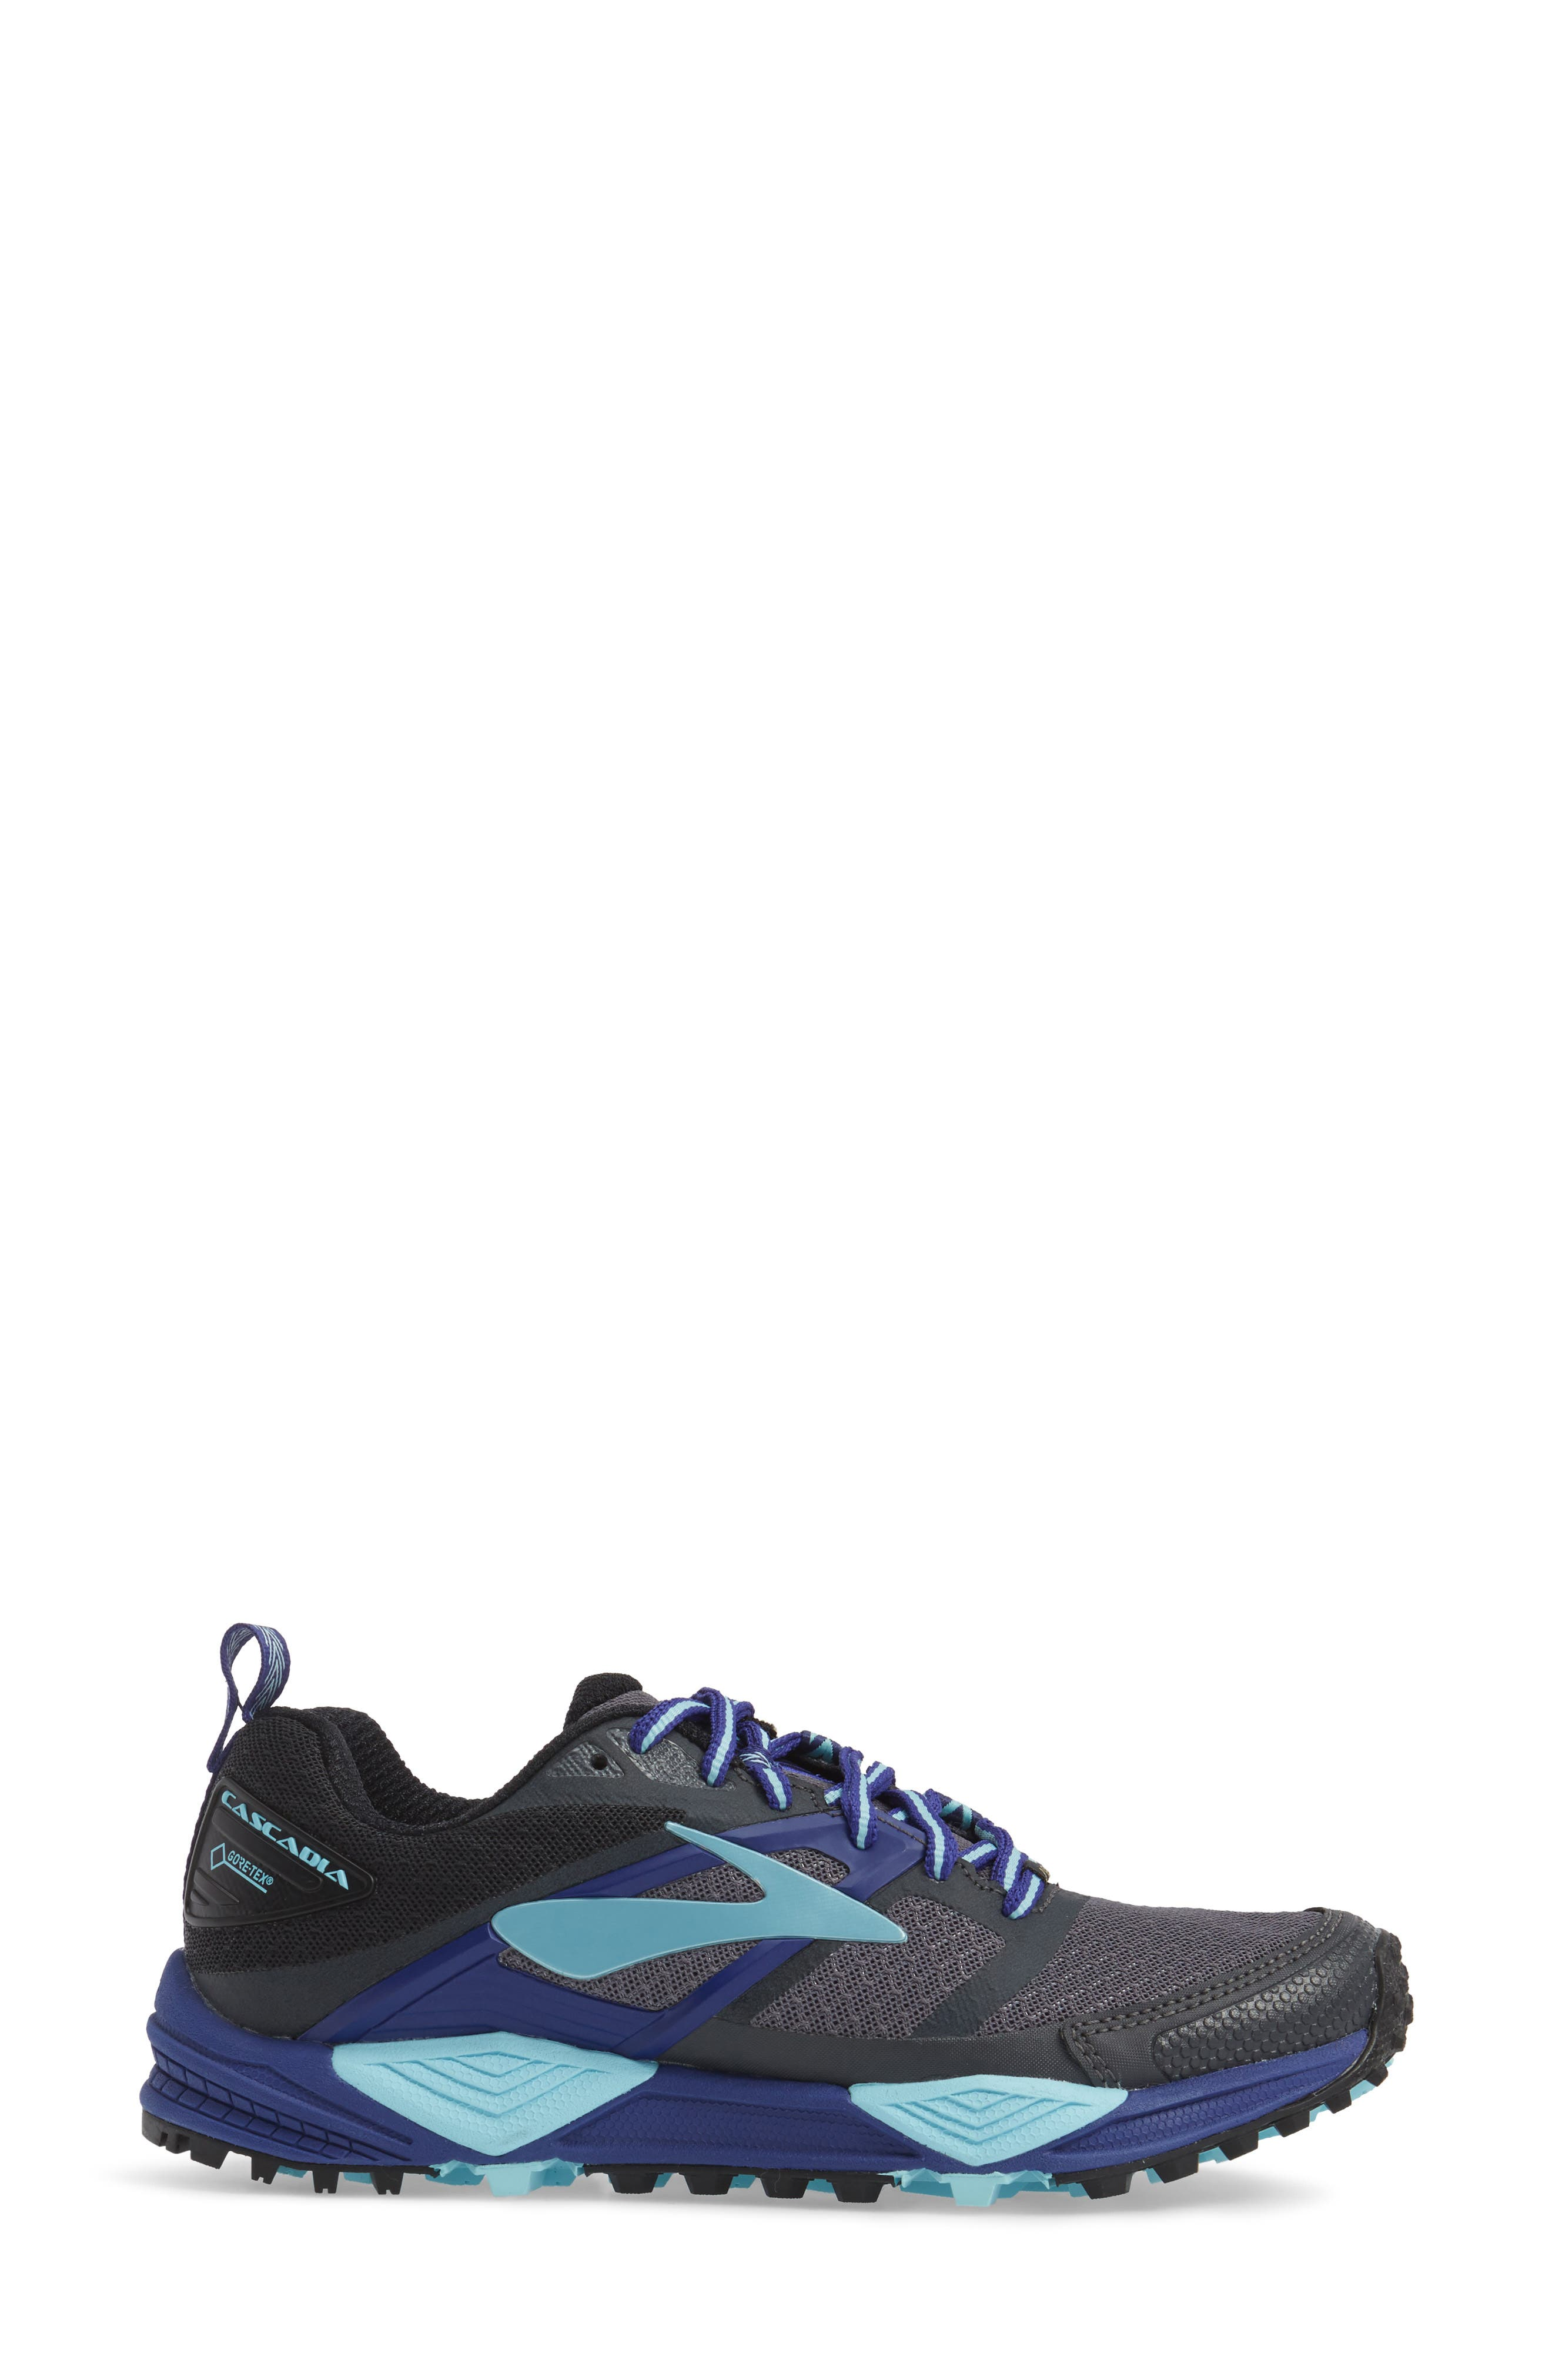 Cascadia 12 GTX Trail Running Shoe,                             Alternate thumbnail 3, color,                             001